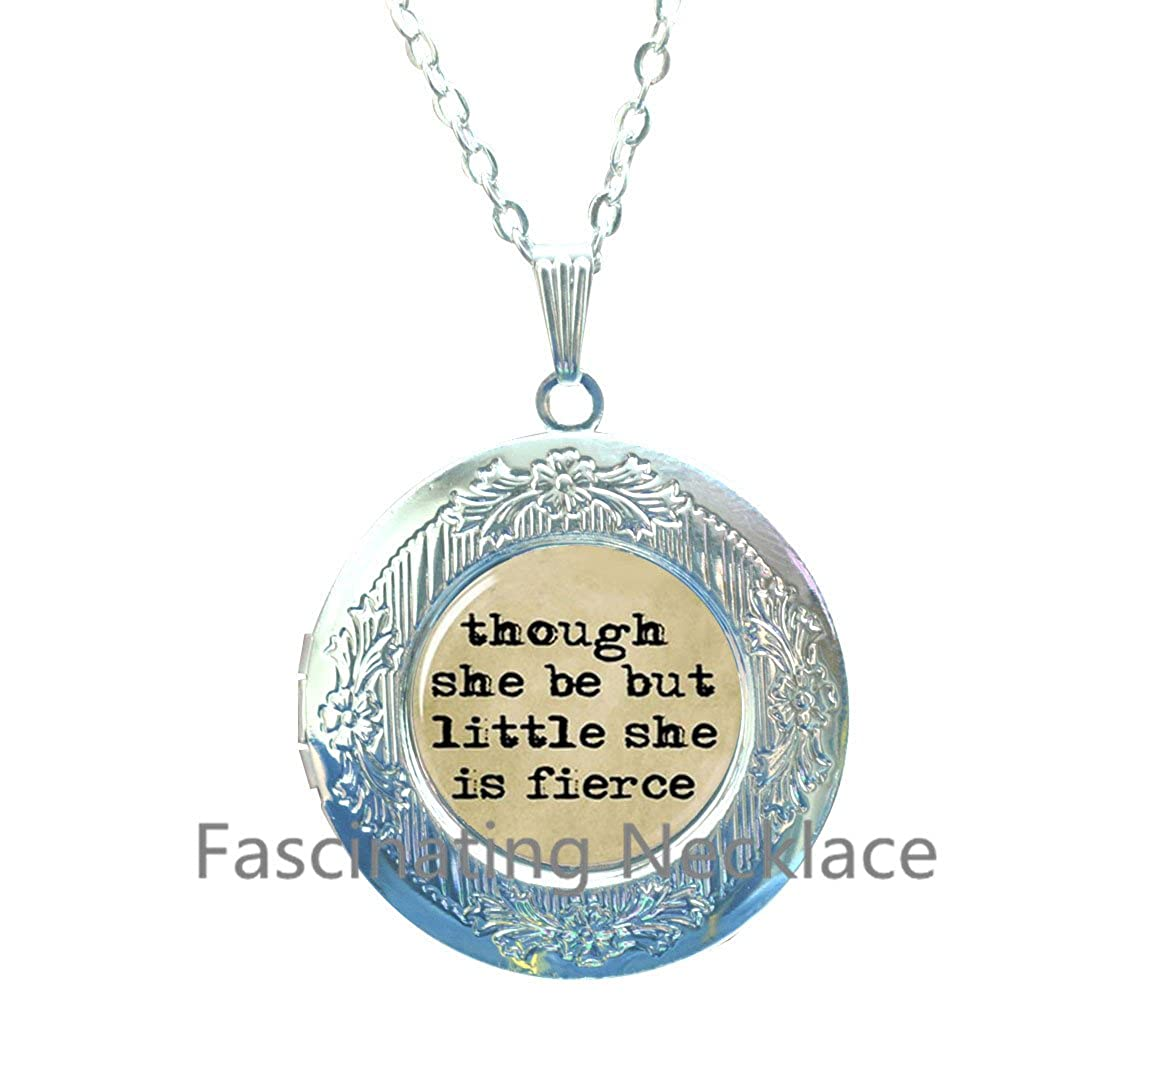 New Locket Necklace,Though She Be But Little She Is Fierce Locket Necklace,Quote Locket Necklace,Quote Locket Pendant, Typewriter /& Old Paper Locket Necklace Locket Pendant,AE0020